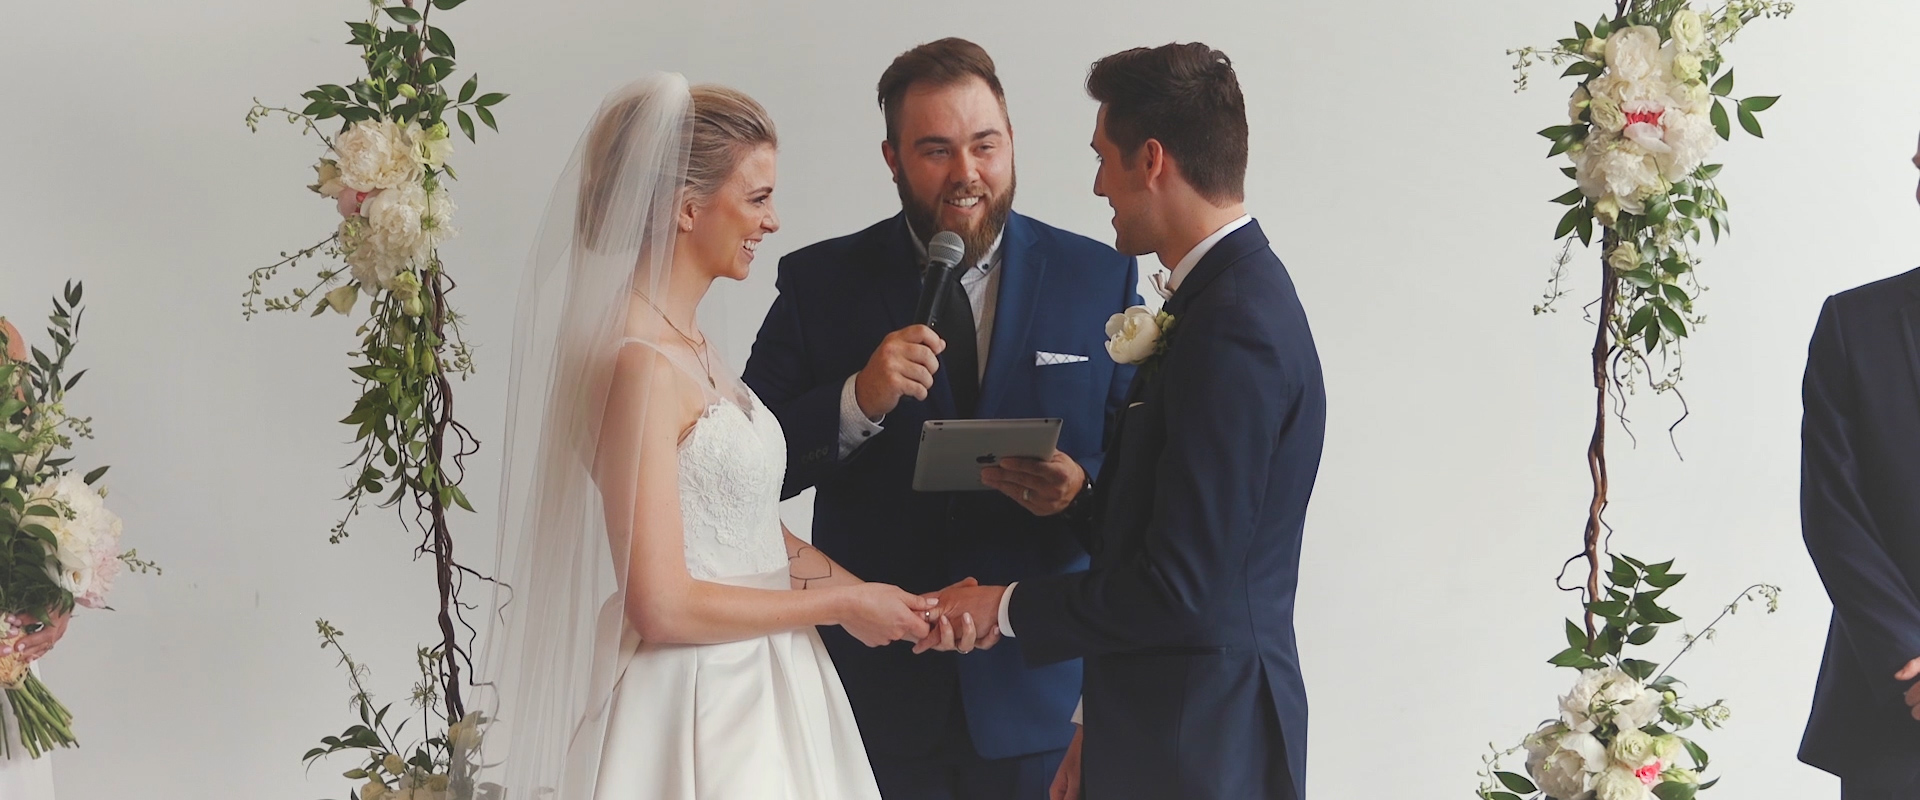 An image of a bride and groom placing each others rings at their wedding ceremony; taken from a Toronto Wedding Video